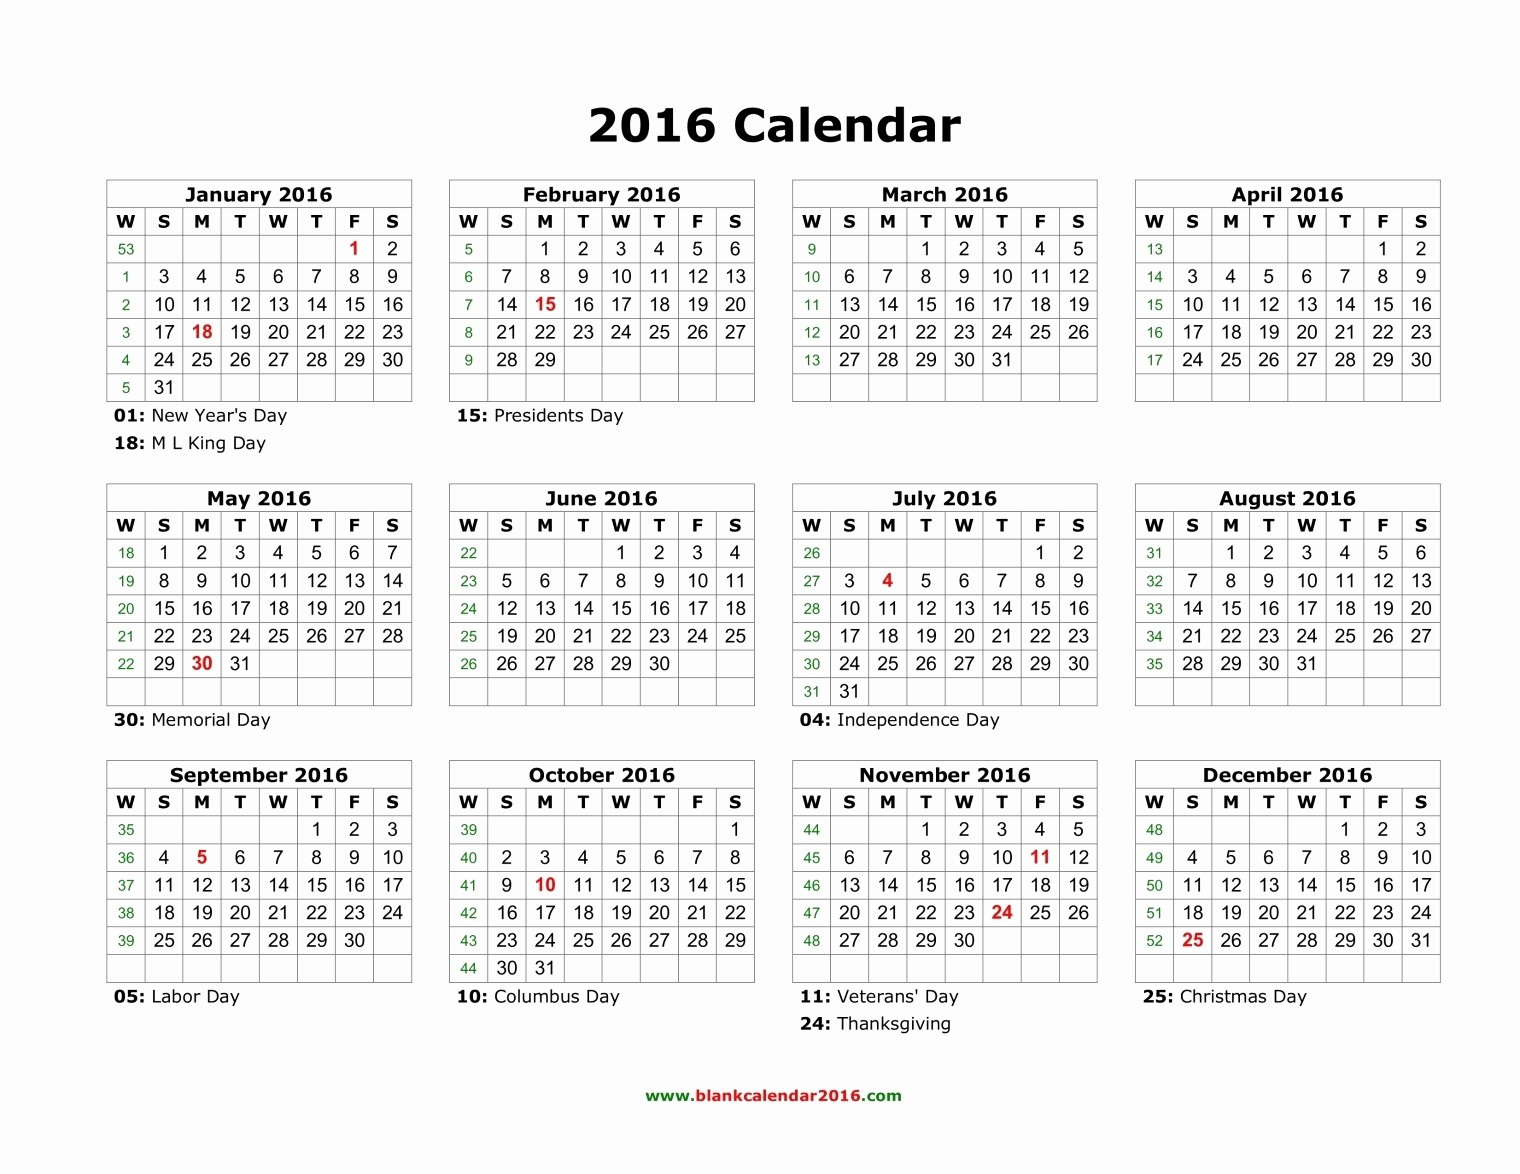 Free Printable Monthly 2016 Calendars New 2016 Yearly Calendar with Holidays Printable